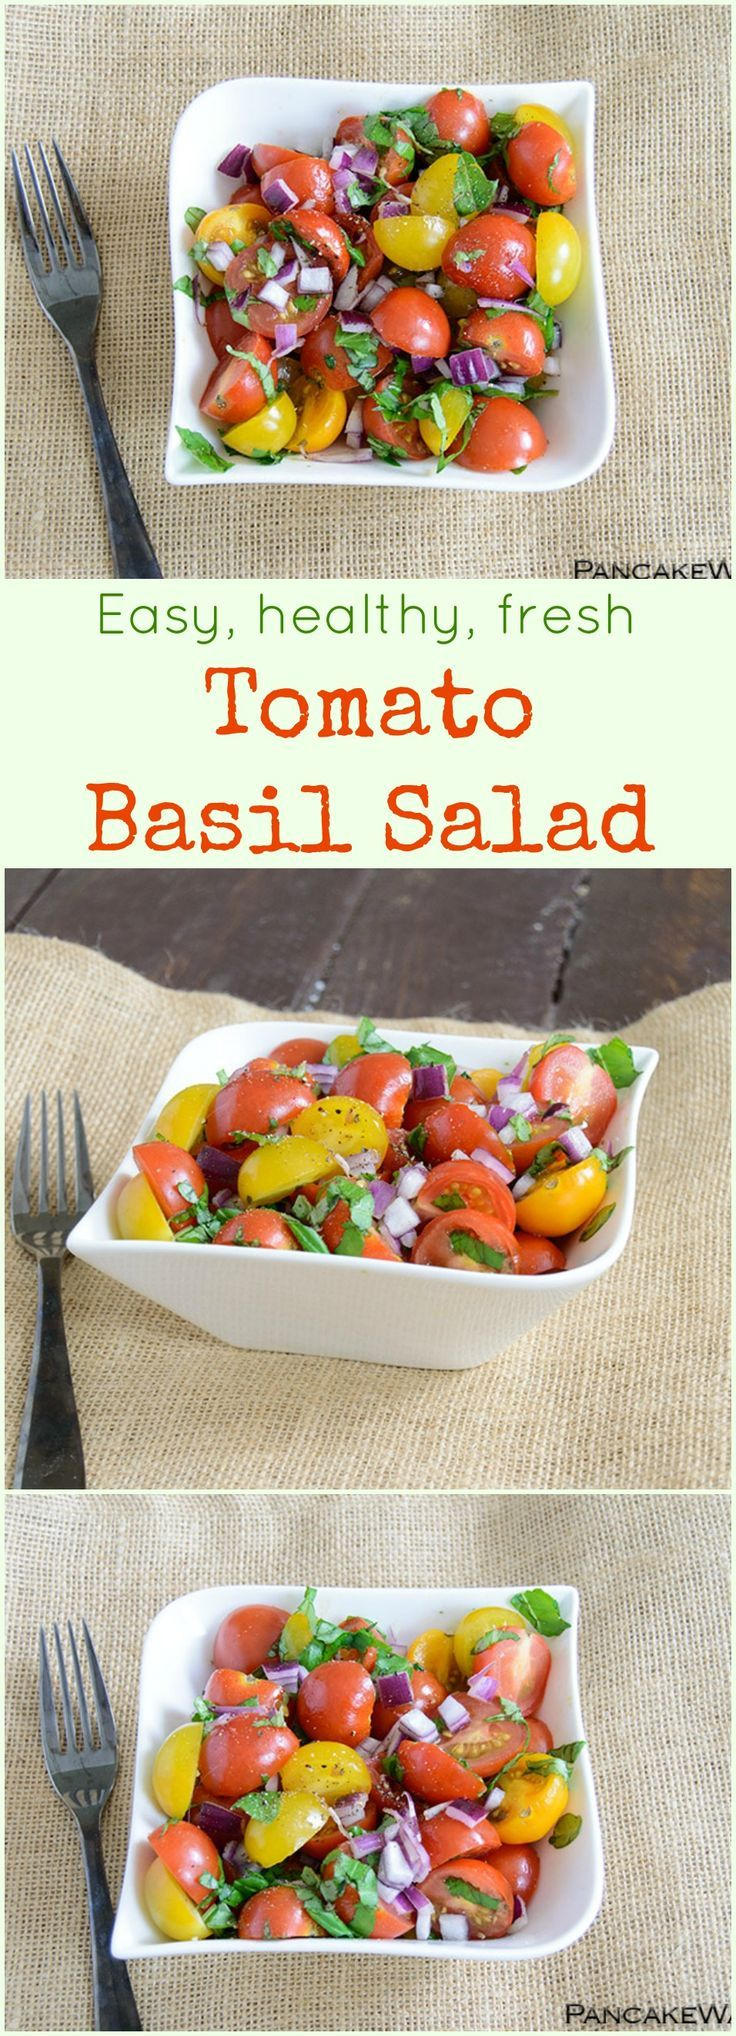 Tomato Basil Salad - this easy, healthy salad will quickly become one of your favorite recipes! Summer favorite, full of flavor and fresh veggies! Vegan, gluten free, low fat, easy healthy recipe.